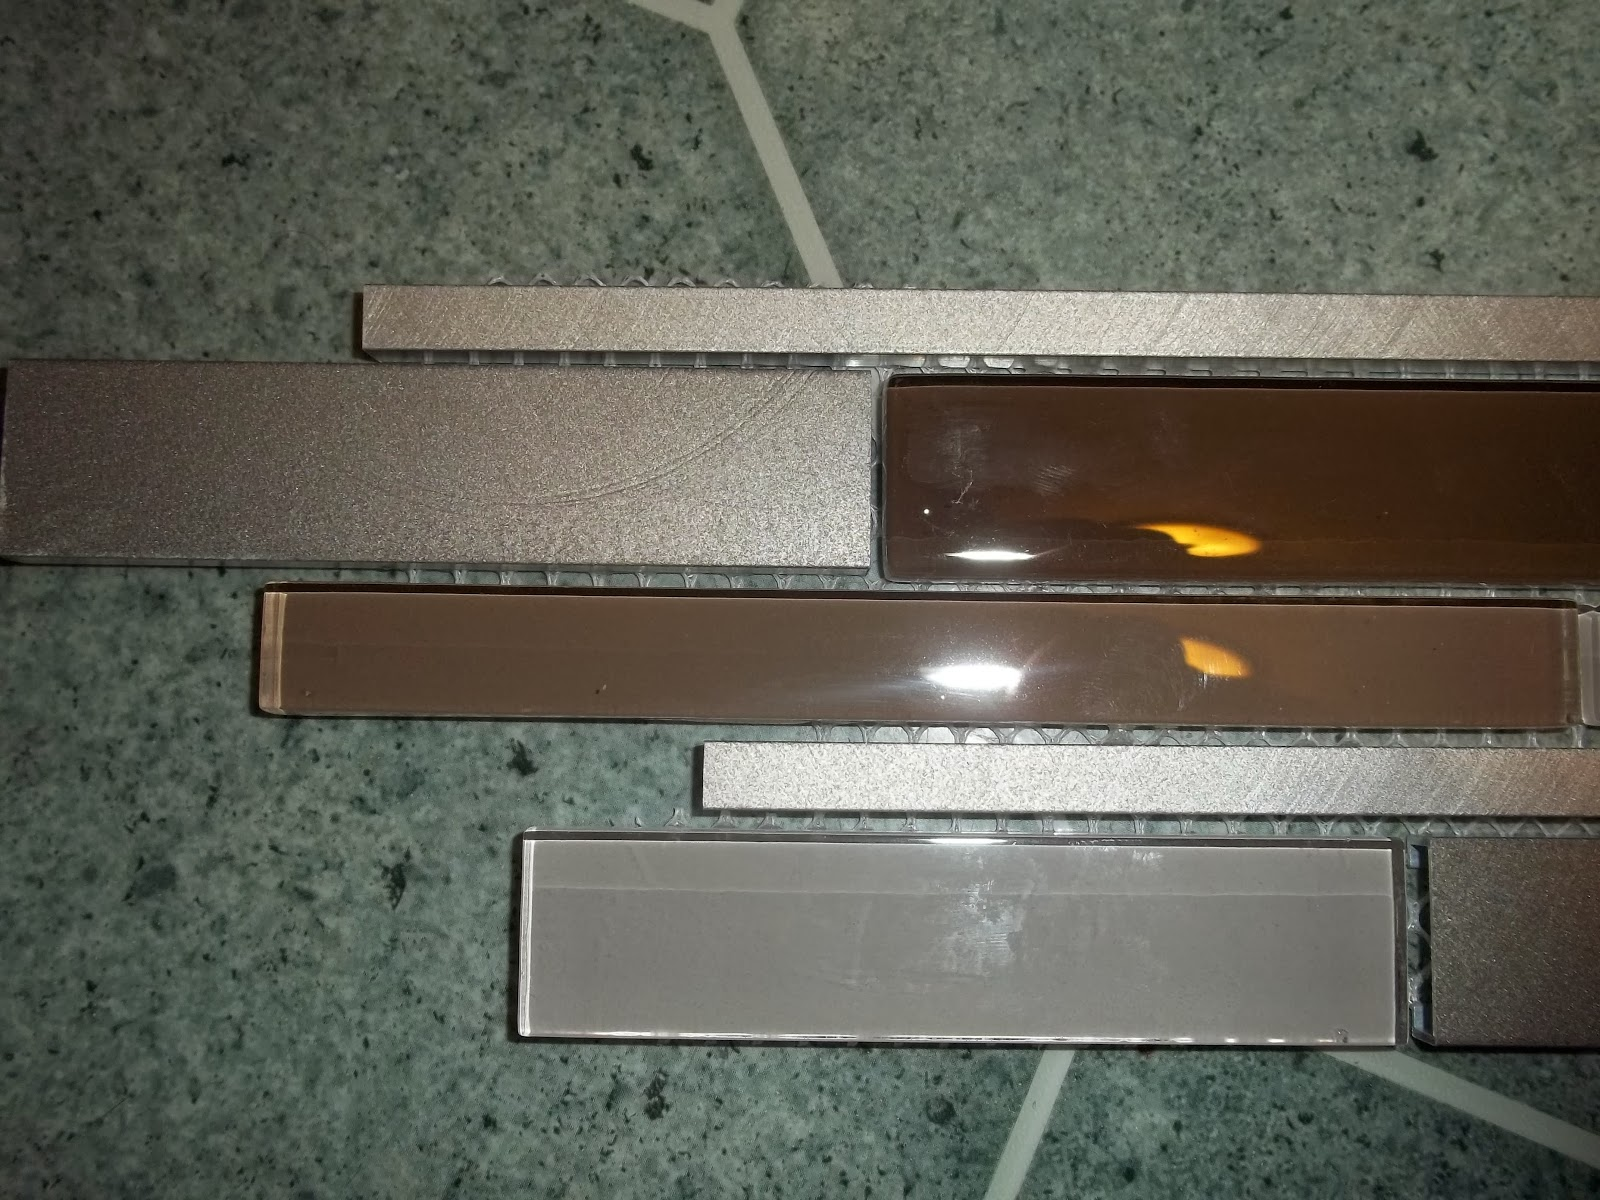 Glass And Metal Mosaic Tile Recommended To Use Unsanded Grout To Prevent  Scratching. If Hand Grouted Carefully Sanded Grout Can Be Used For Strength